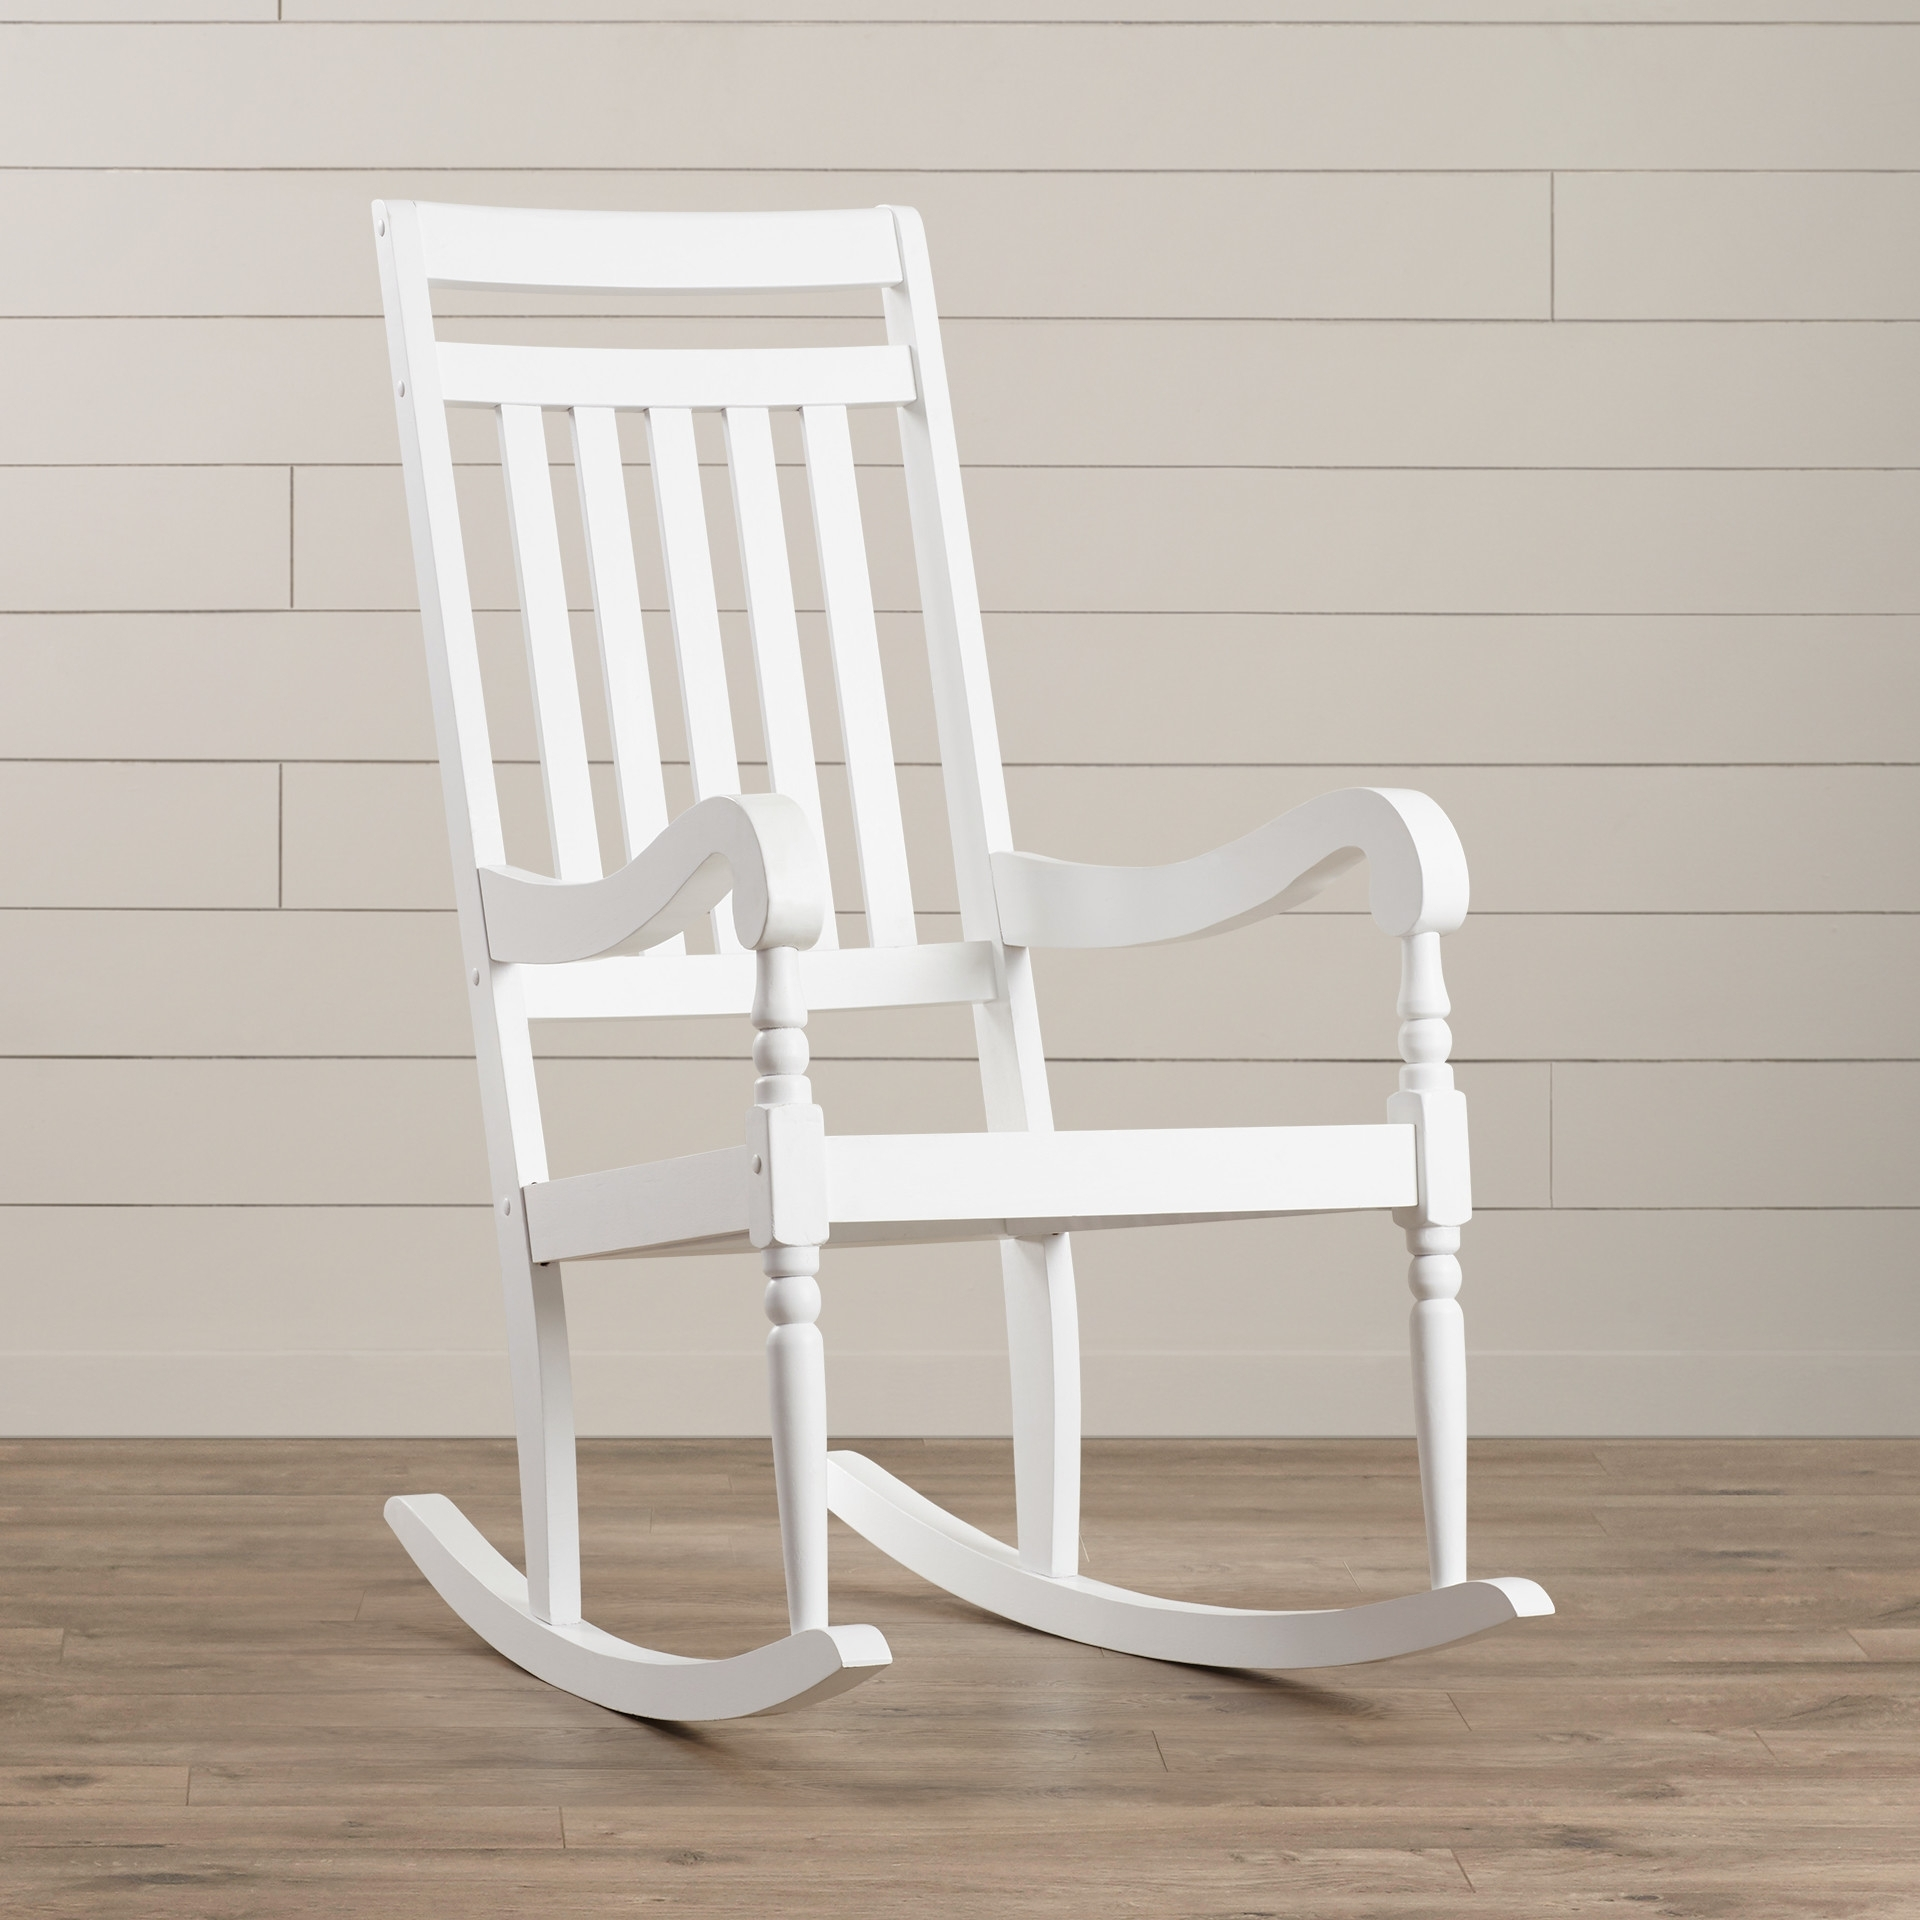 Rocking Chairs Wayfair Aileen Chair ~ Clipgoo With Well Known Rocking Chairs At Wayfair (View 16 of 20)